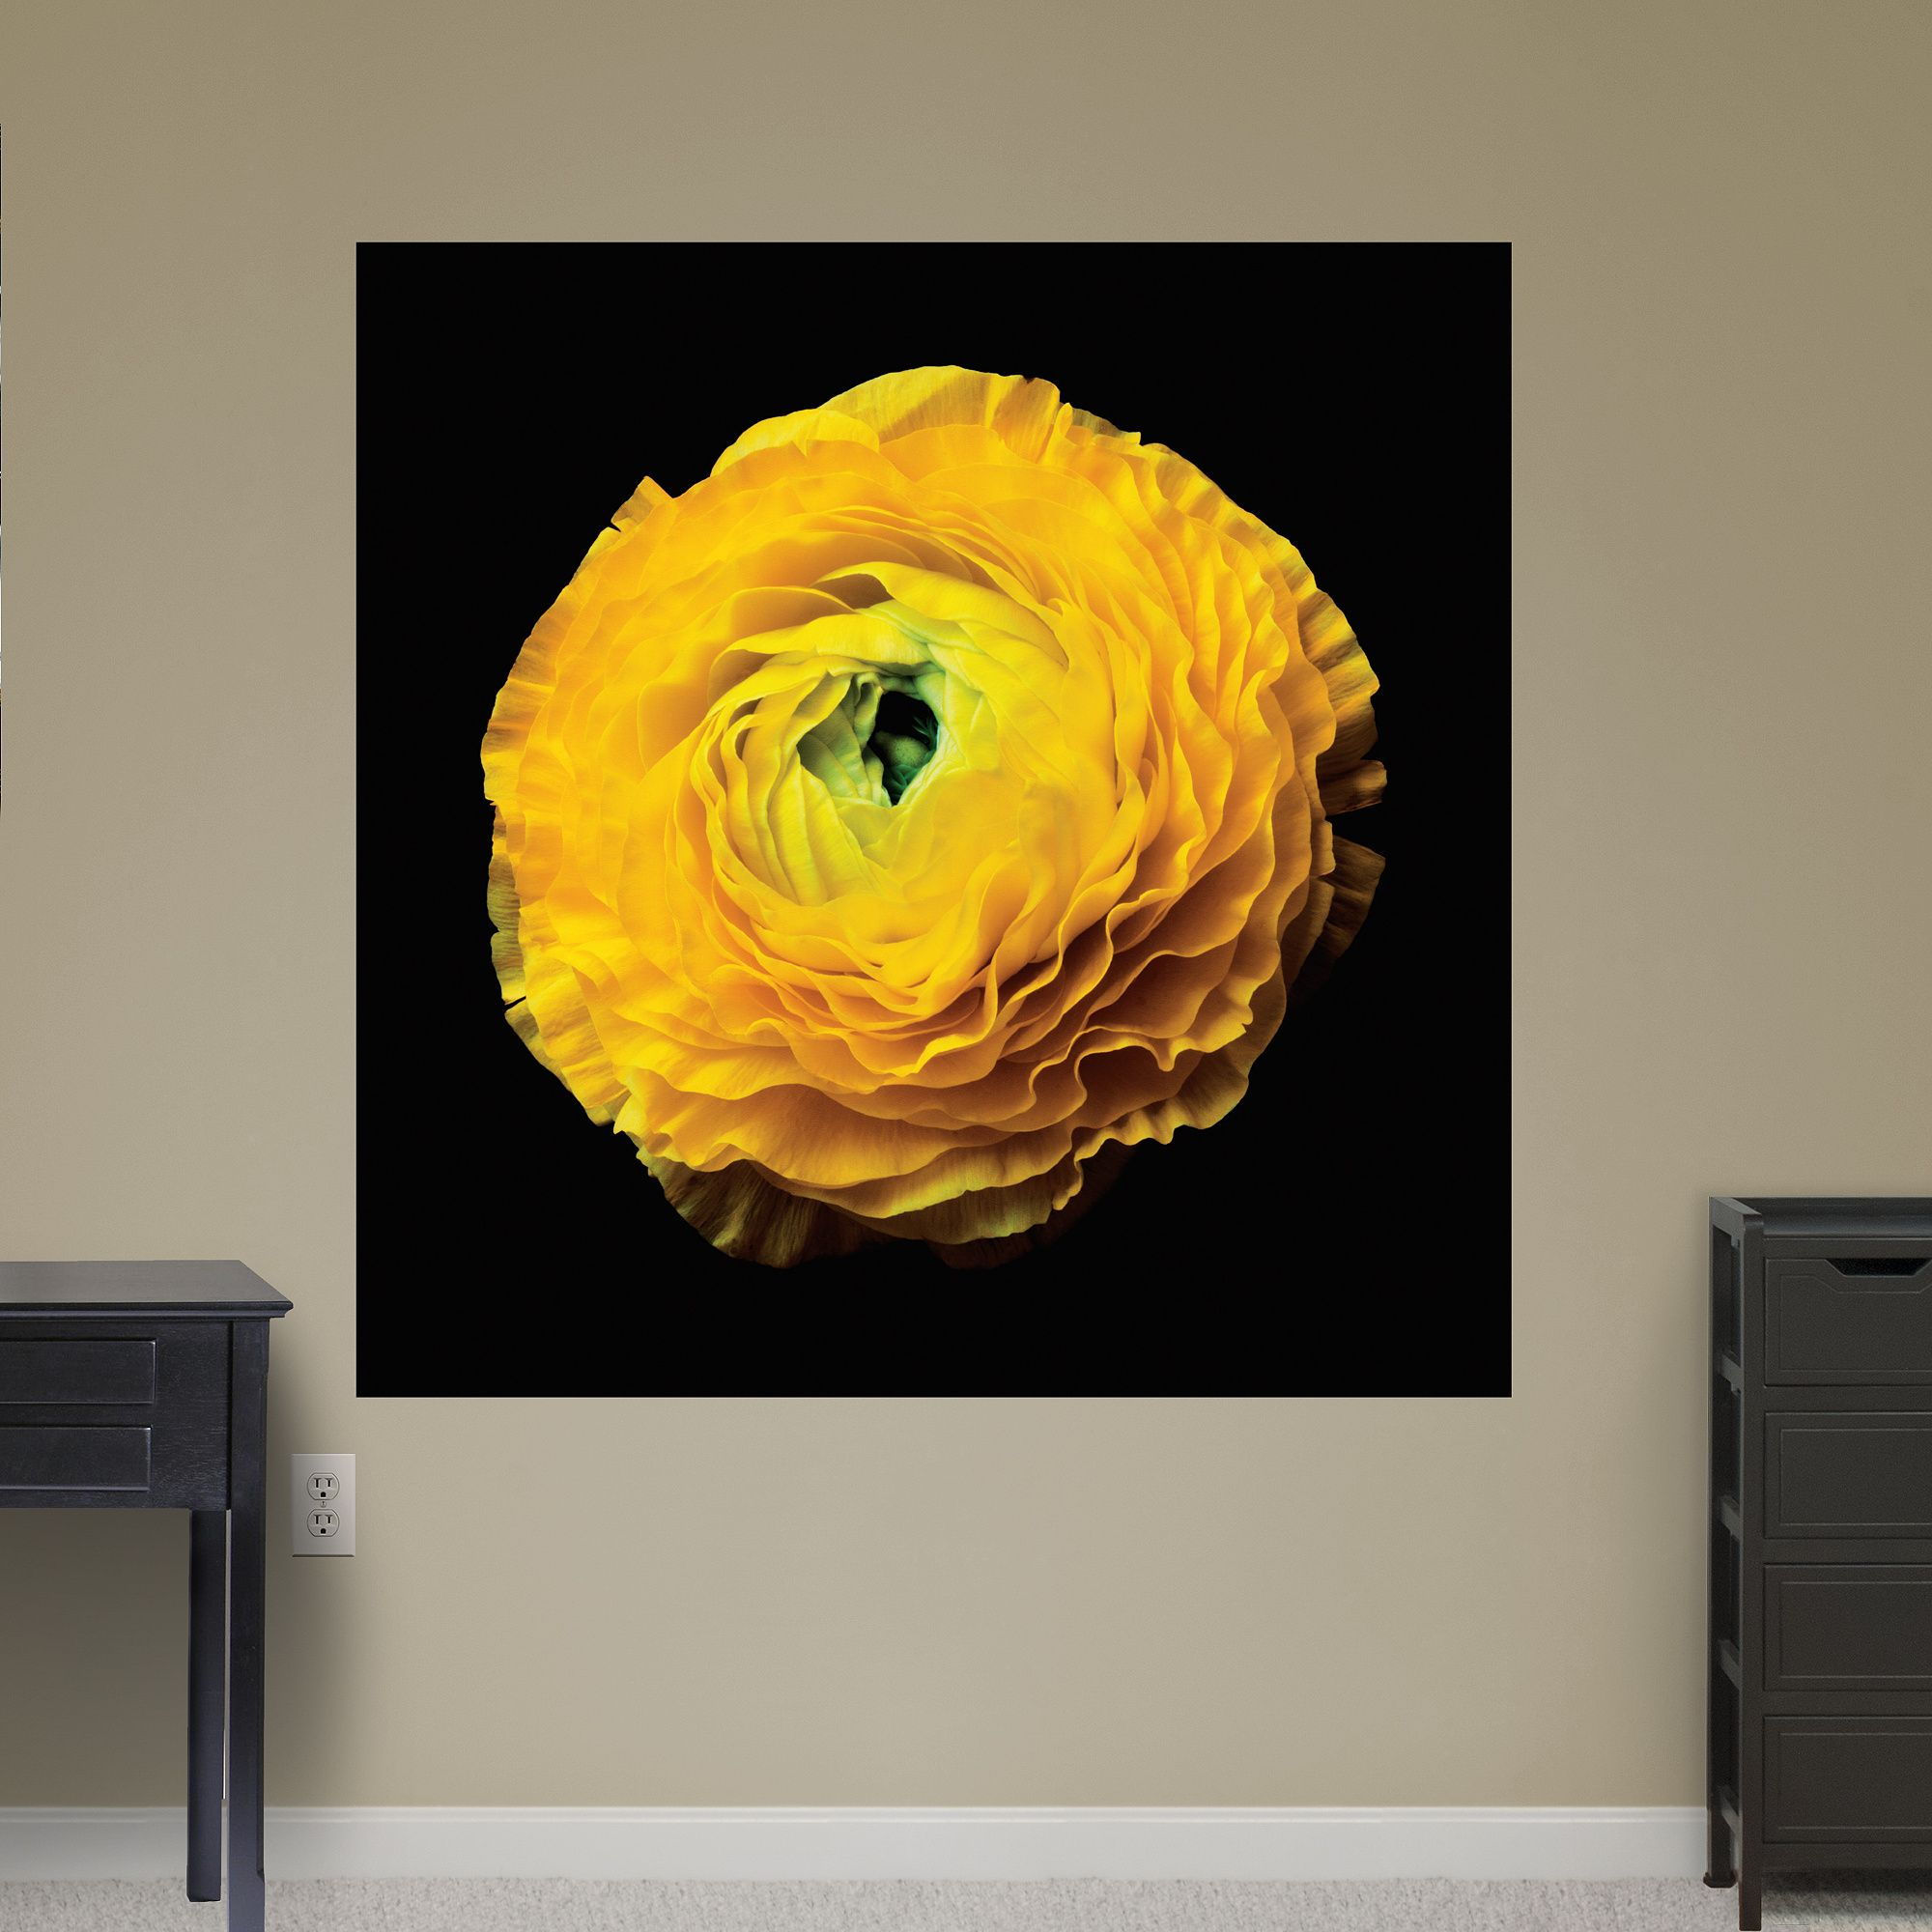 Ranunculus | Wall decals | Pinterest | Ranunculus and Wall decals